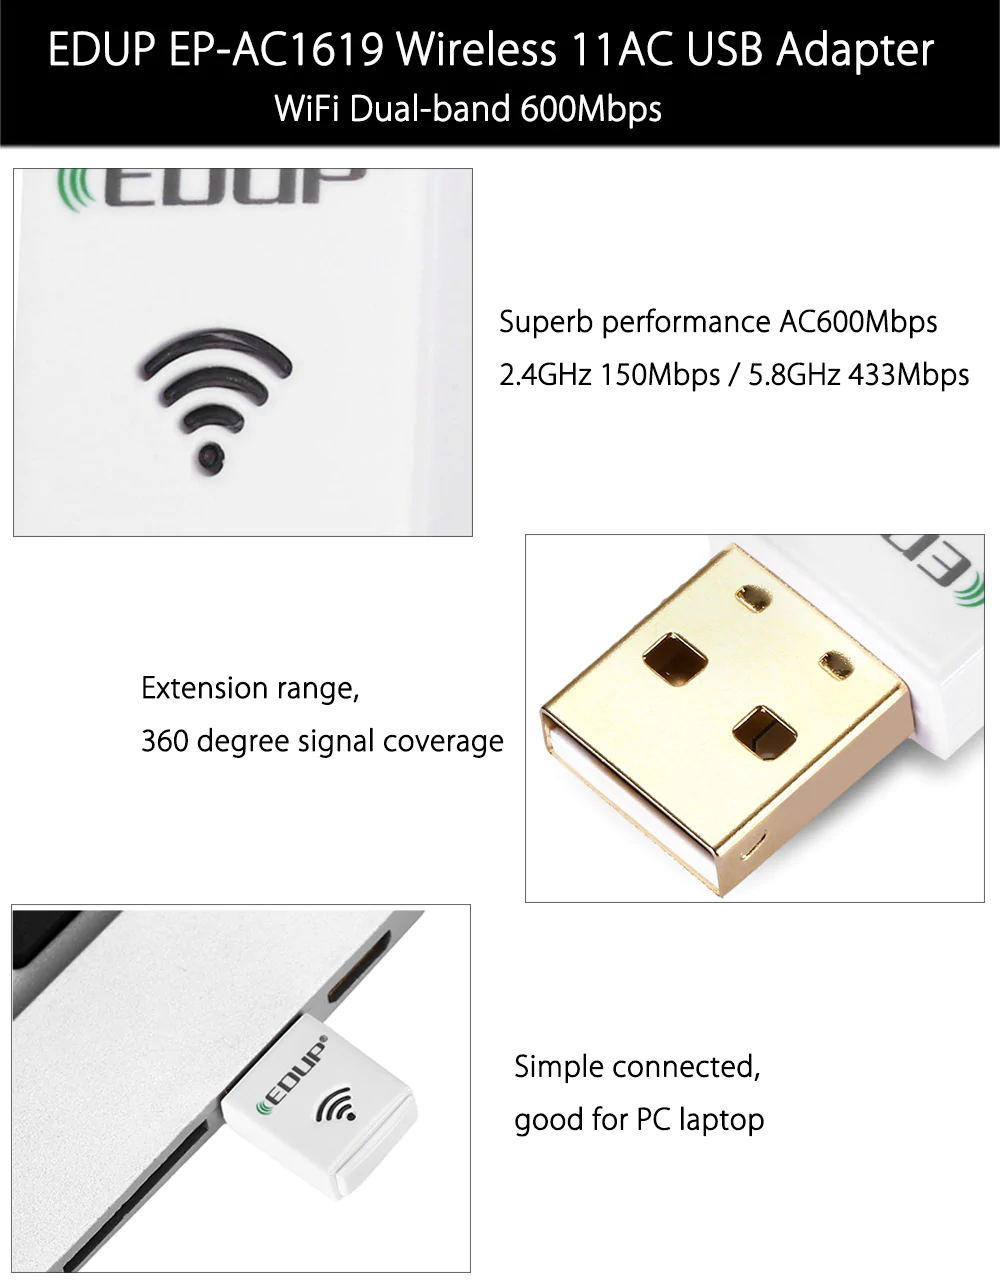 edup ep-ac1619 usb wifi adapter for sale